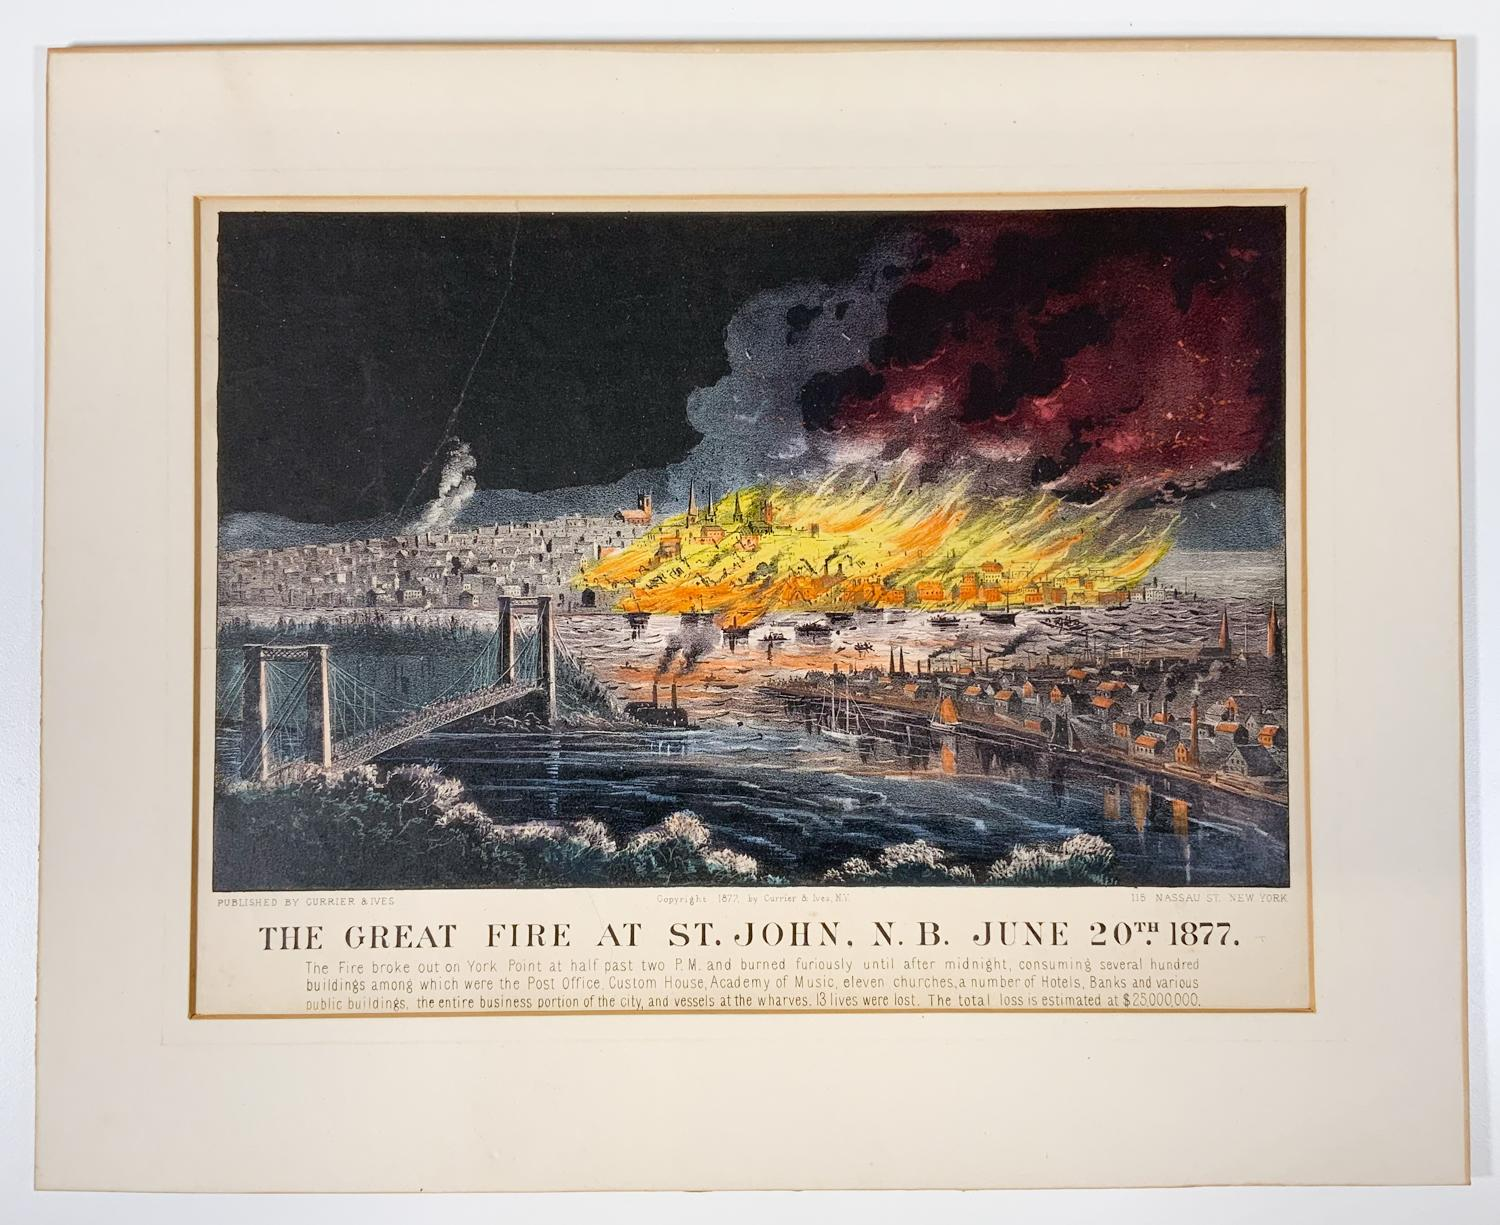 The Great Fire at St John, NB June 20, 1877